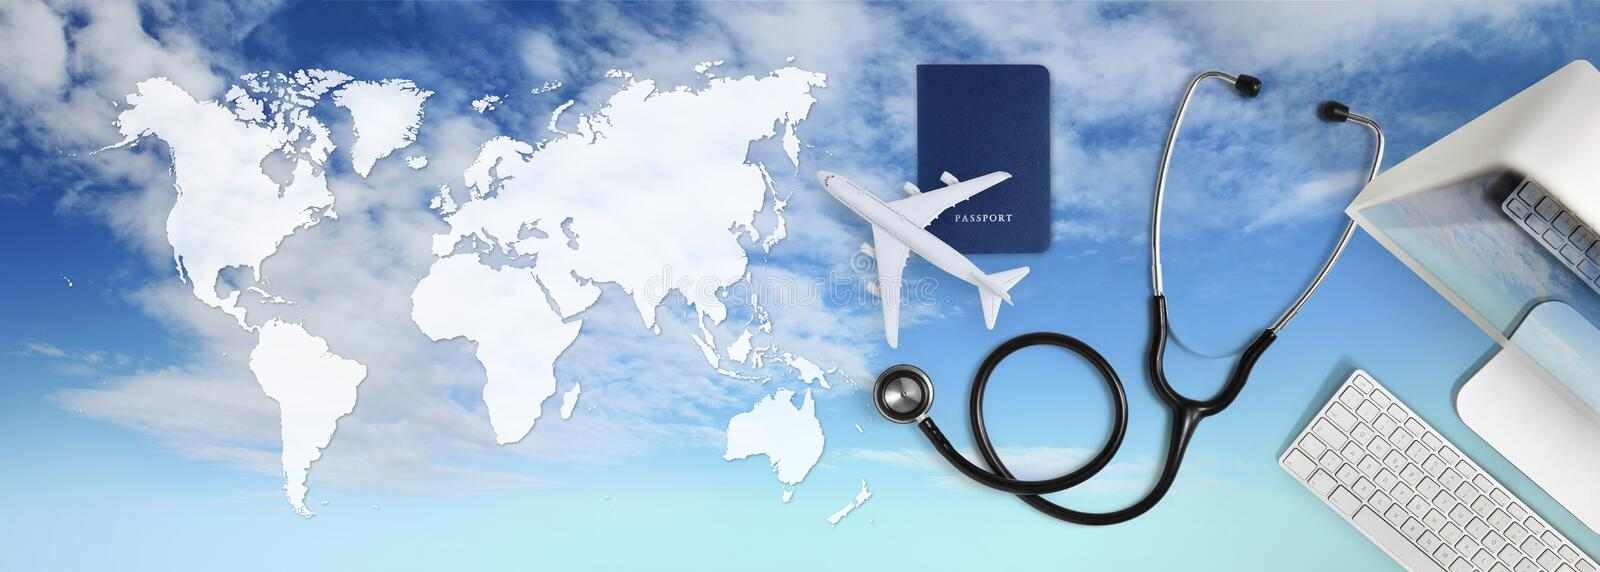 International medical travel insurance concept,stethoscope, passport, computer and airplane in sky background with global map. International medical travel royalty free stock photo